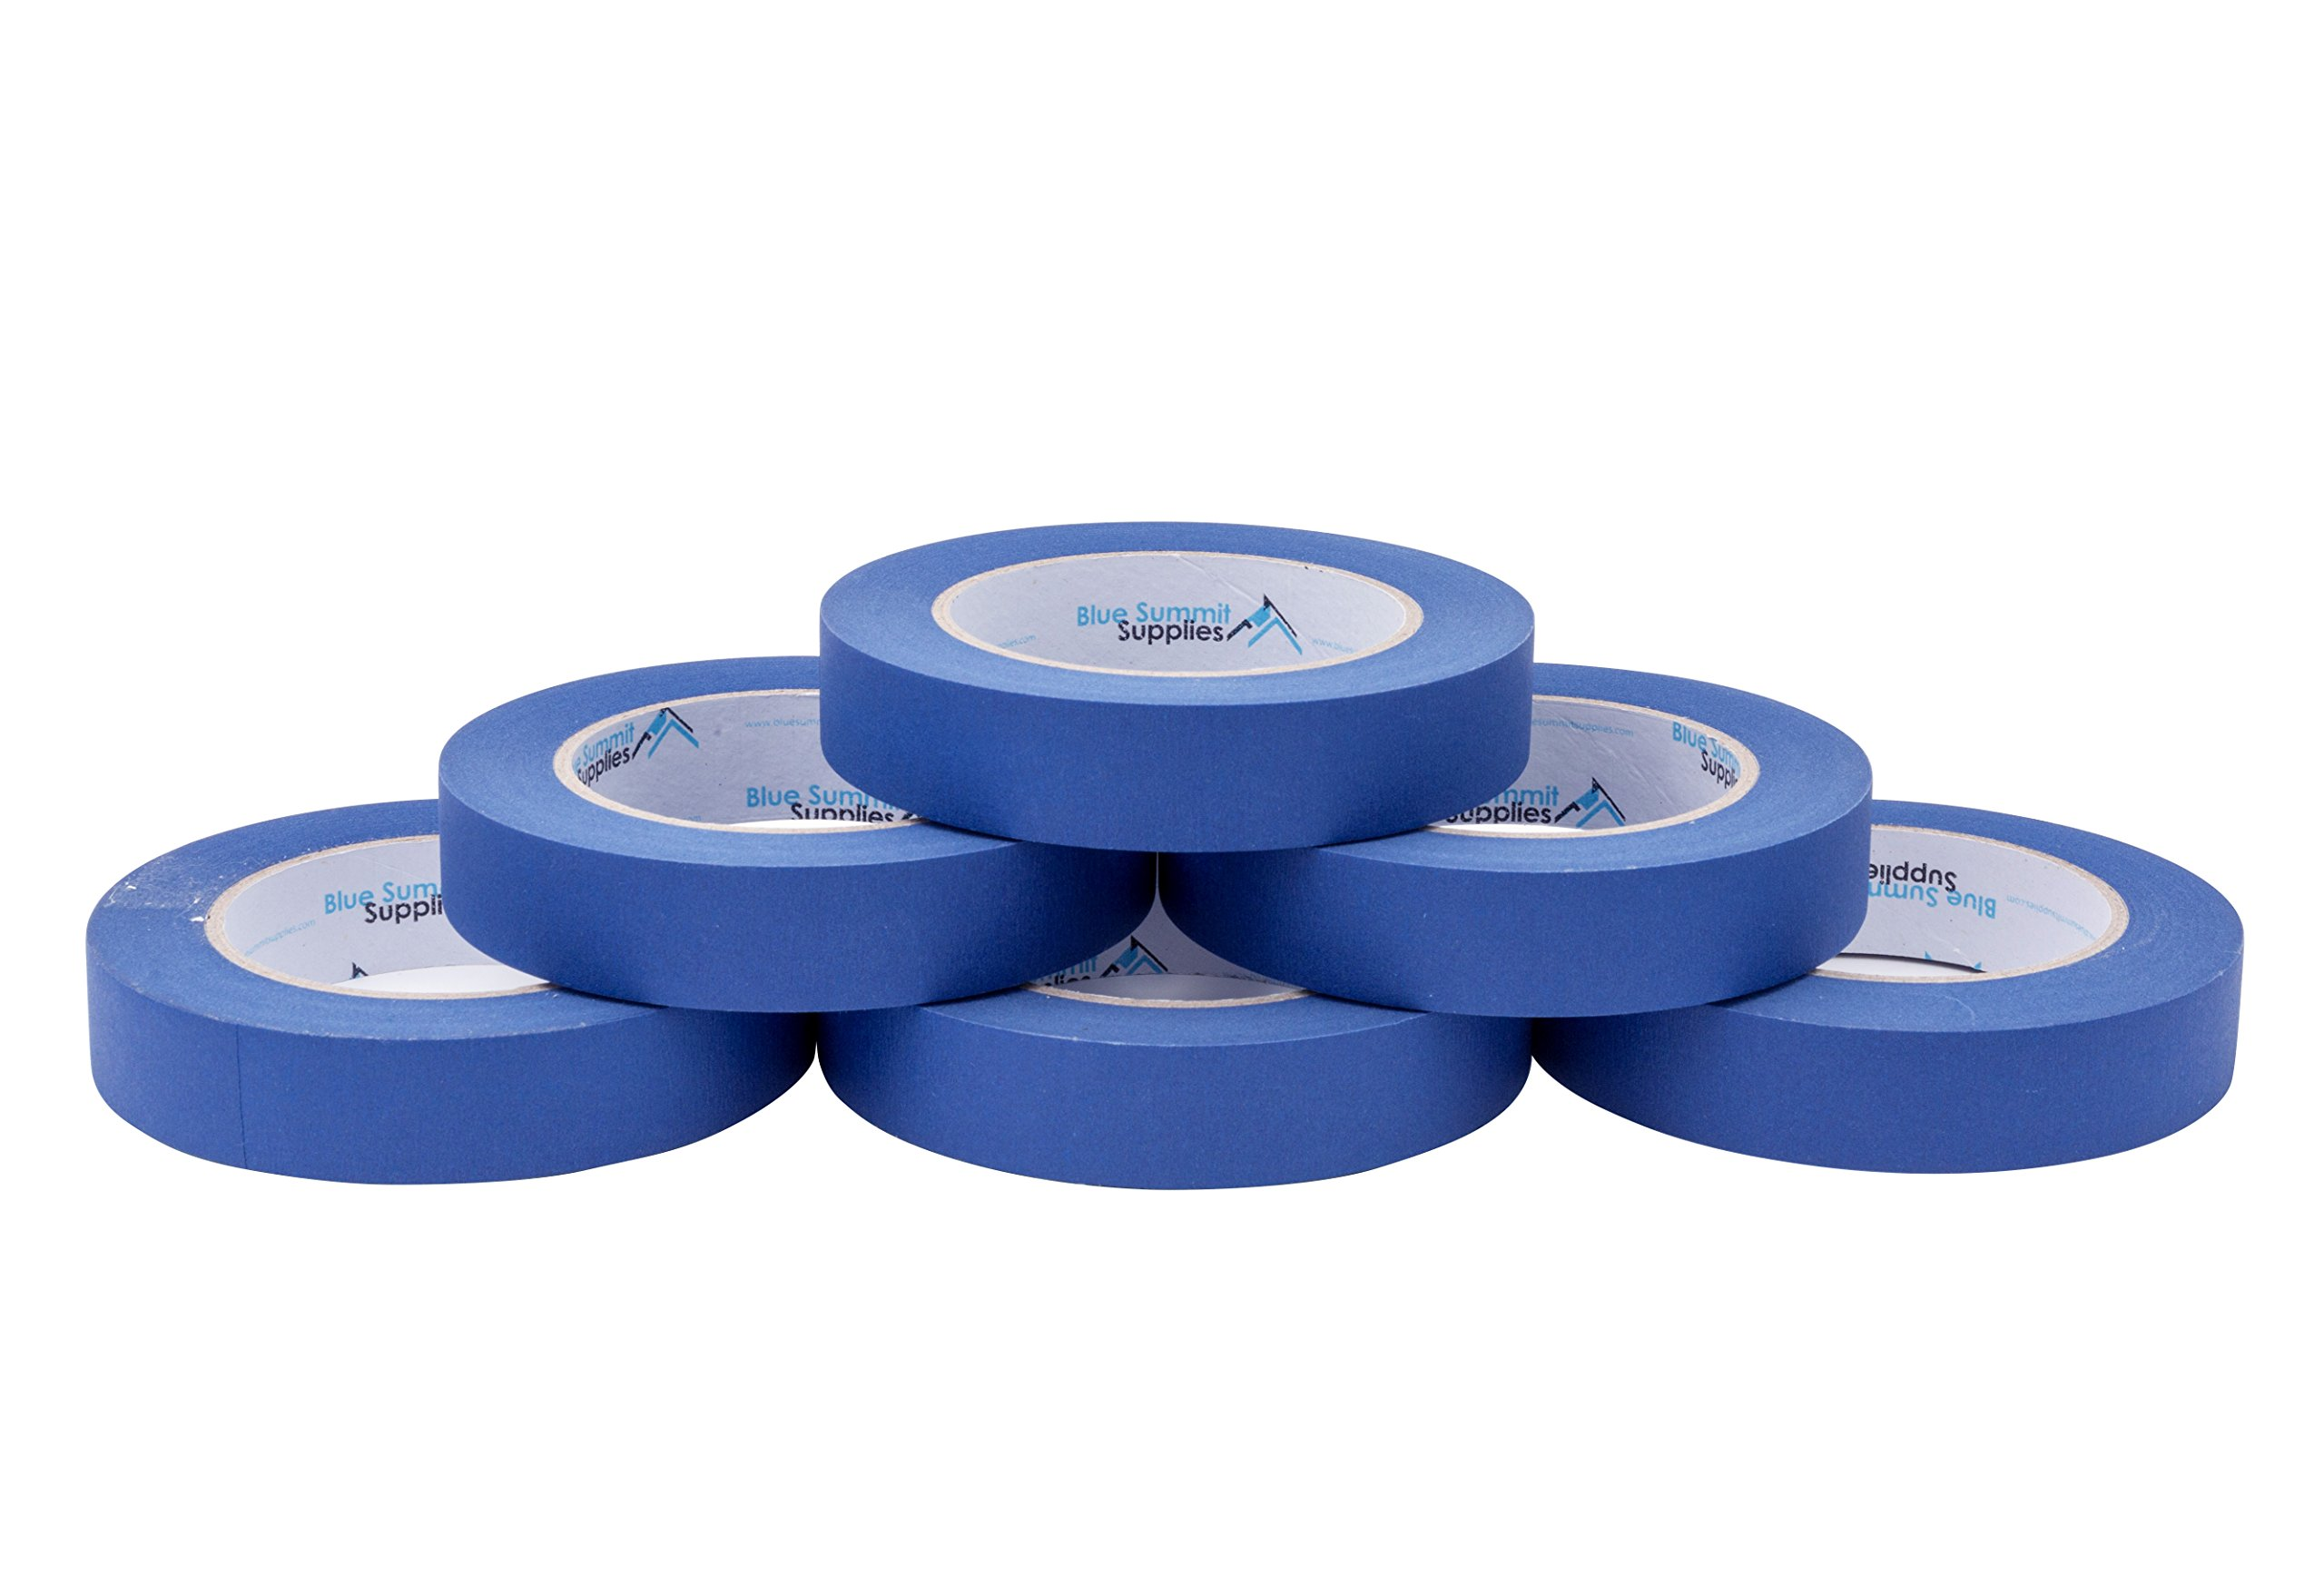 6 Pack 0.94 Inch Blue Painters Tape, Medium Adhesive That Sticks Well but Leaves No Residue Behind, 60 Yards Length, 6 Rolls, 360 Total Yards by Blue Summit Supplies